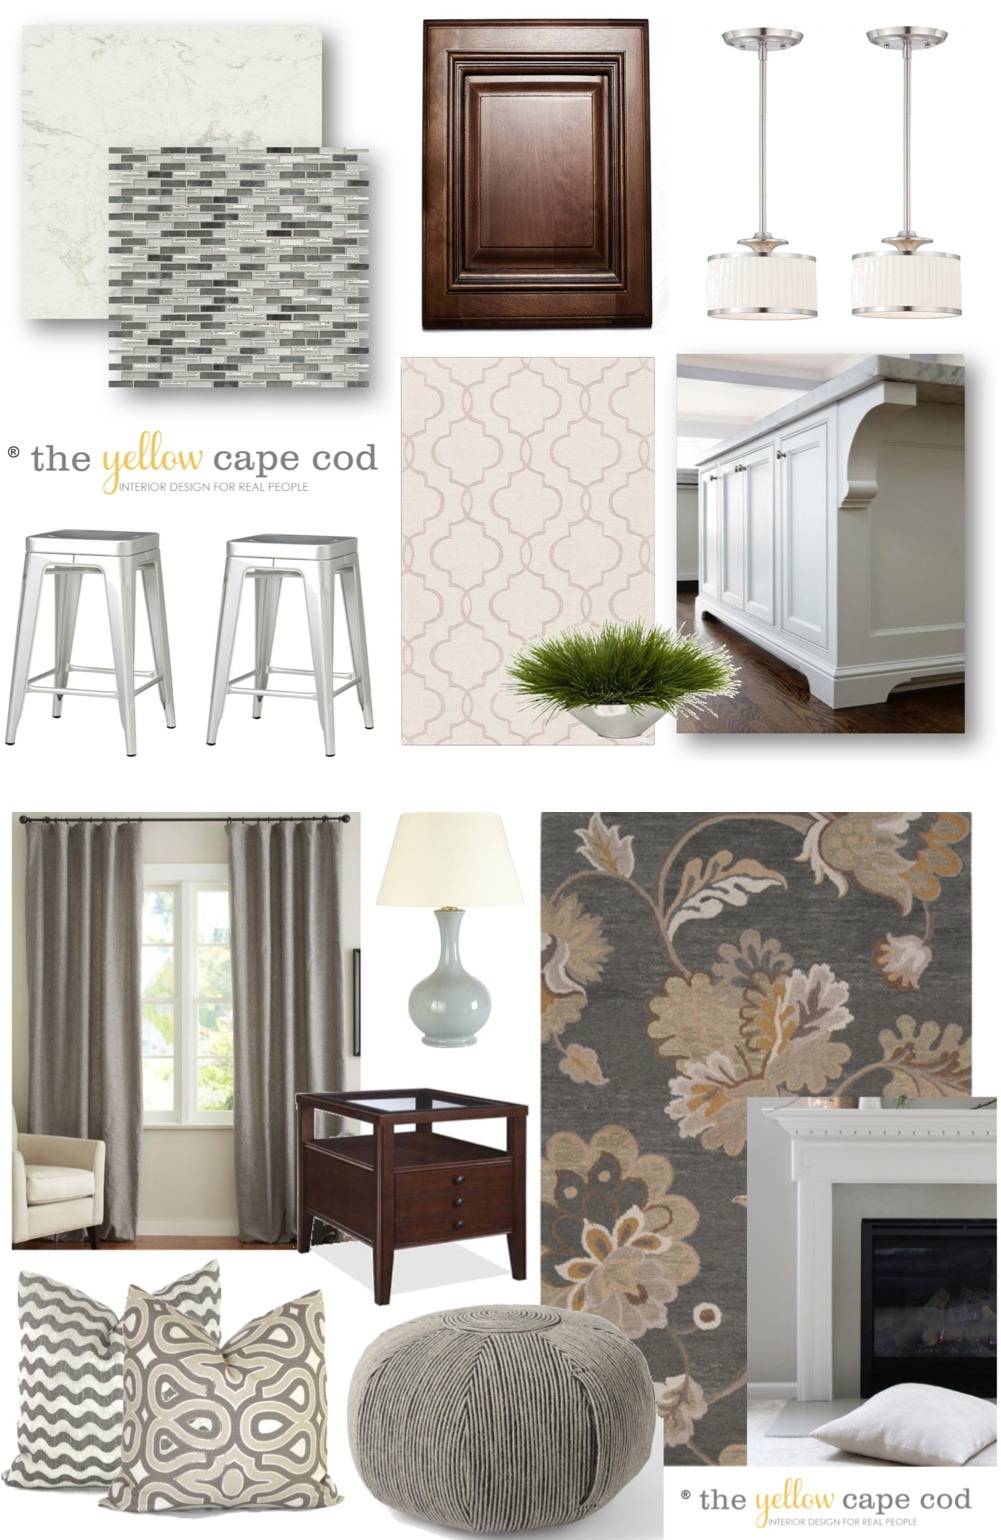 The Yellow Cape Cod My Home Office Dining Room: The Yellow Cape Cod: Gray/Tan Transitional Style Multiroom